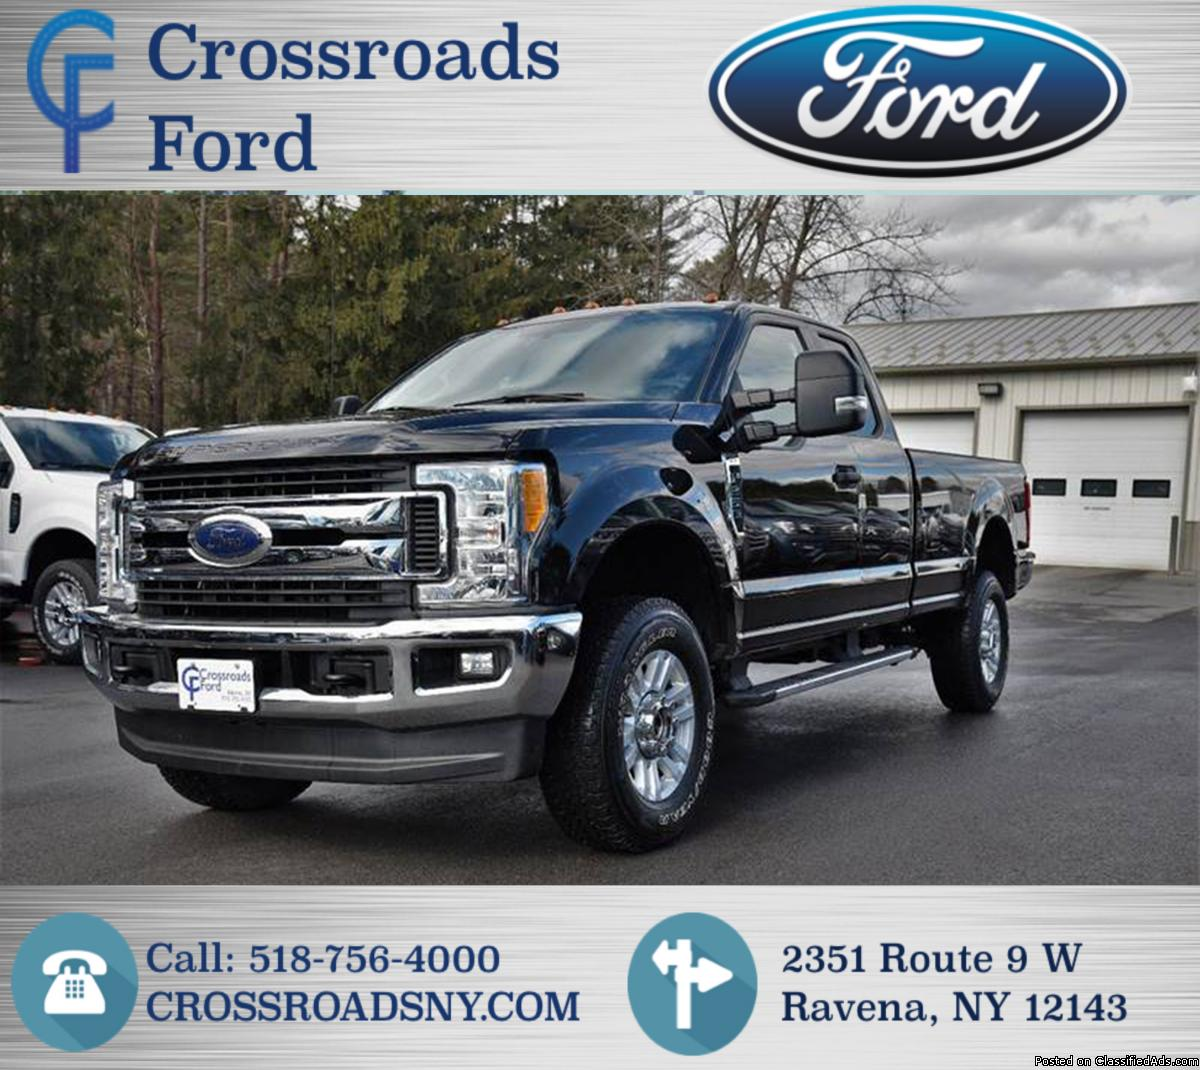 FORD F-250 XLT SUPER DUTY FX4 OFF ROAD! 12K MILES!